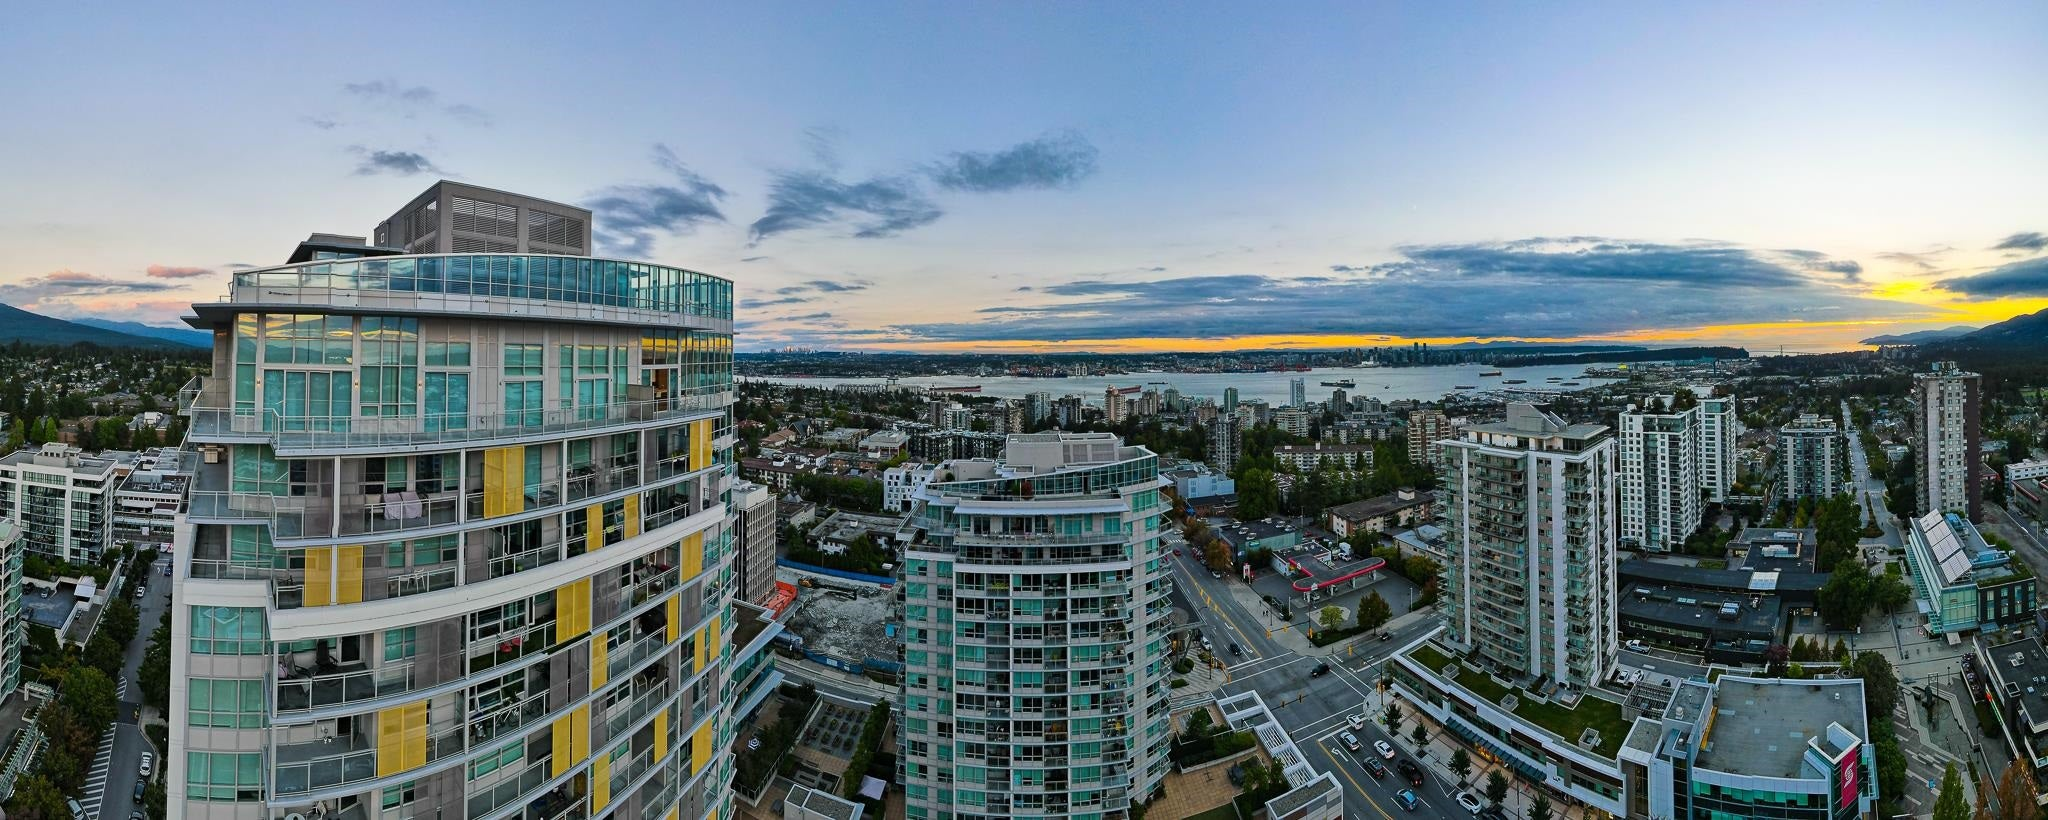 2402 125 E 14TH STREET - Central Lonsdale Apartment/Condo for sale, 2 Bedrooms (R2617870) - #40